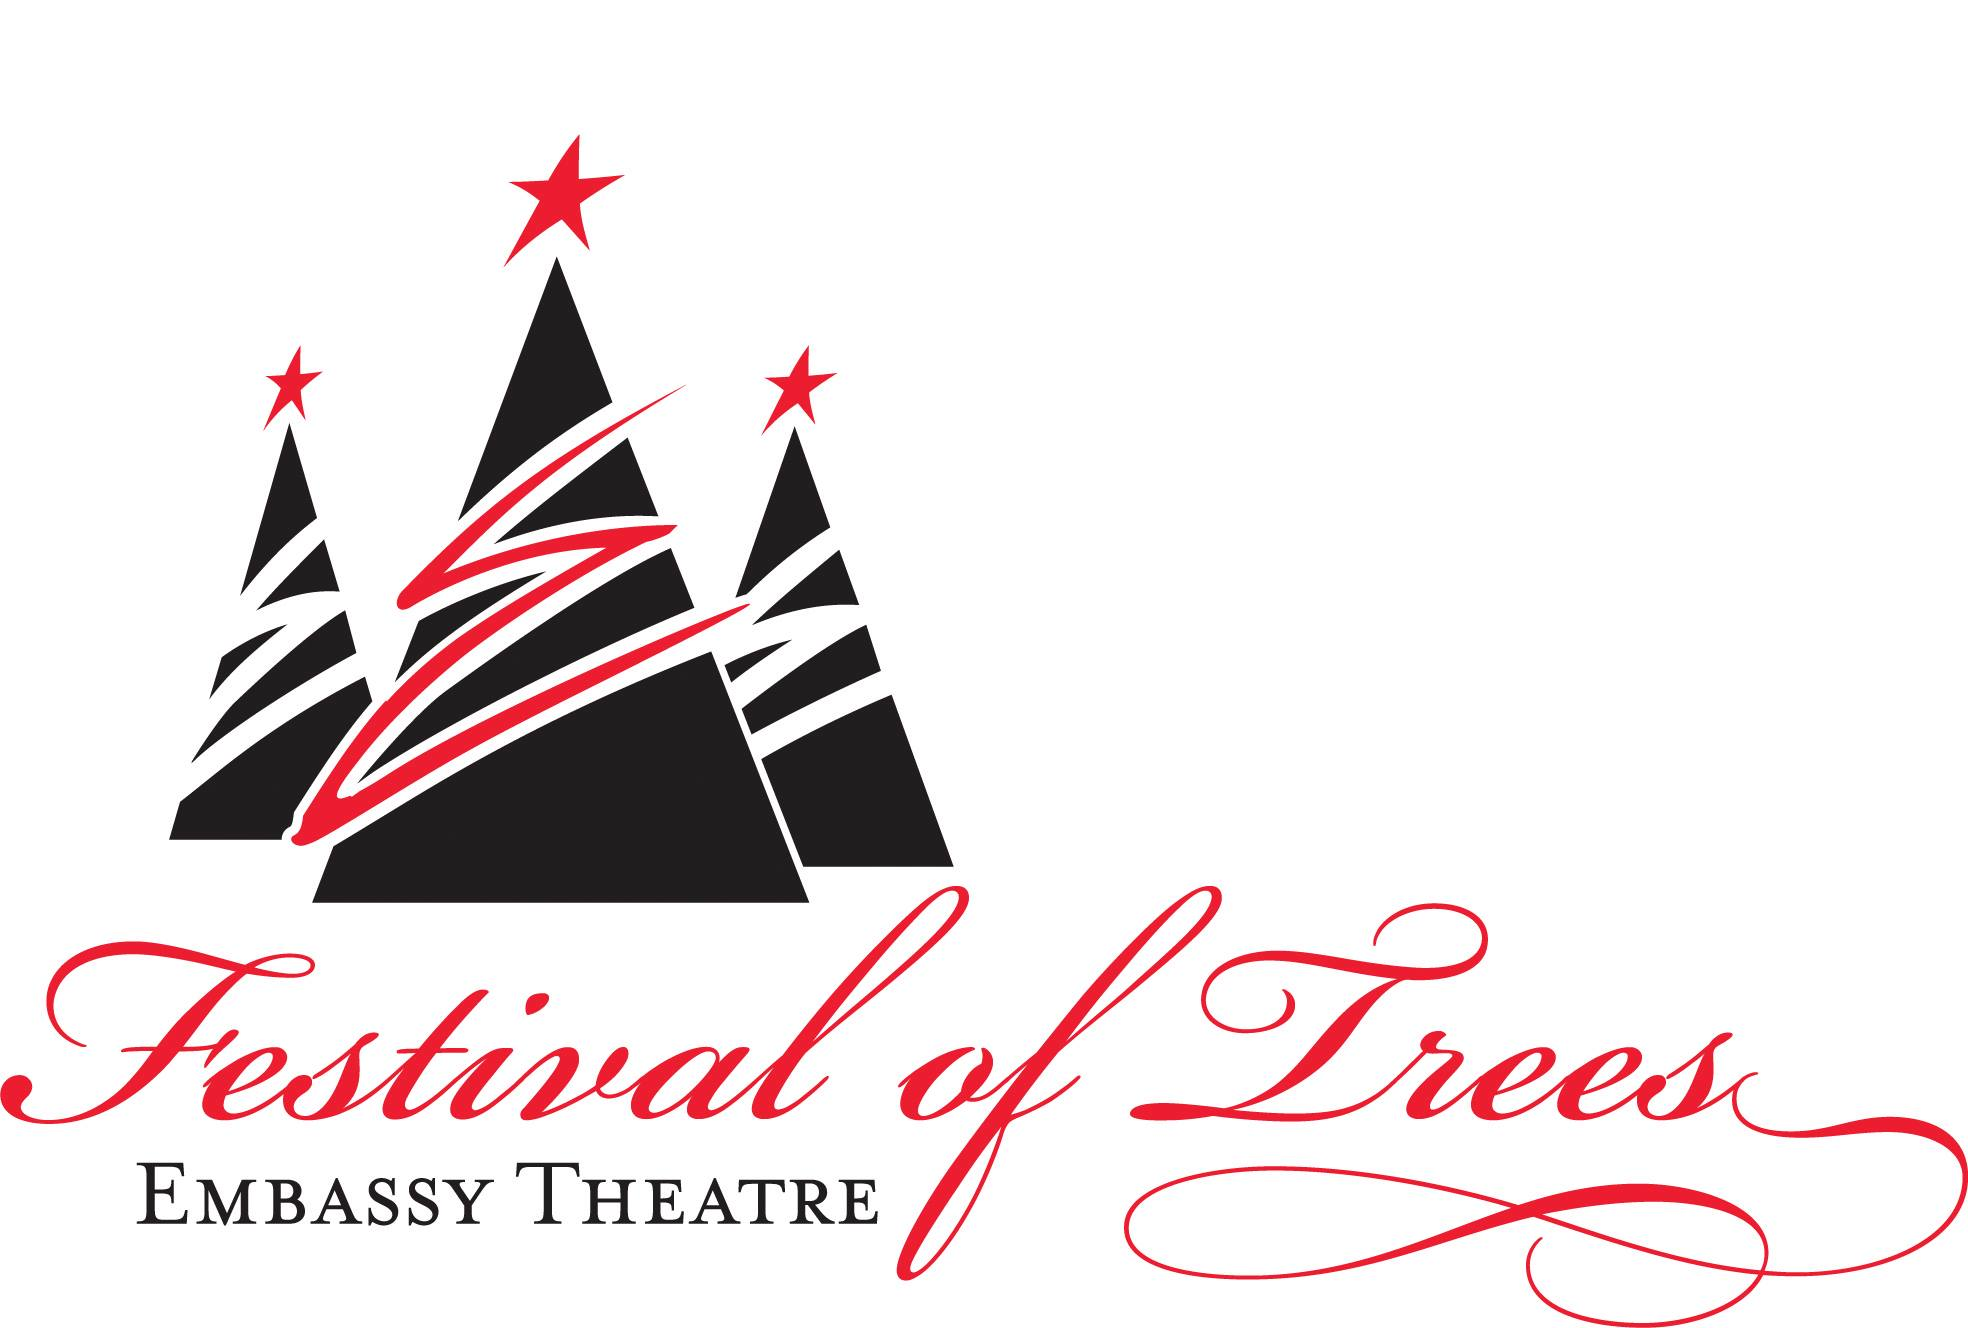 Embassy Theatre Festival Of Trees banner